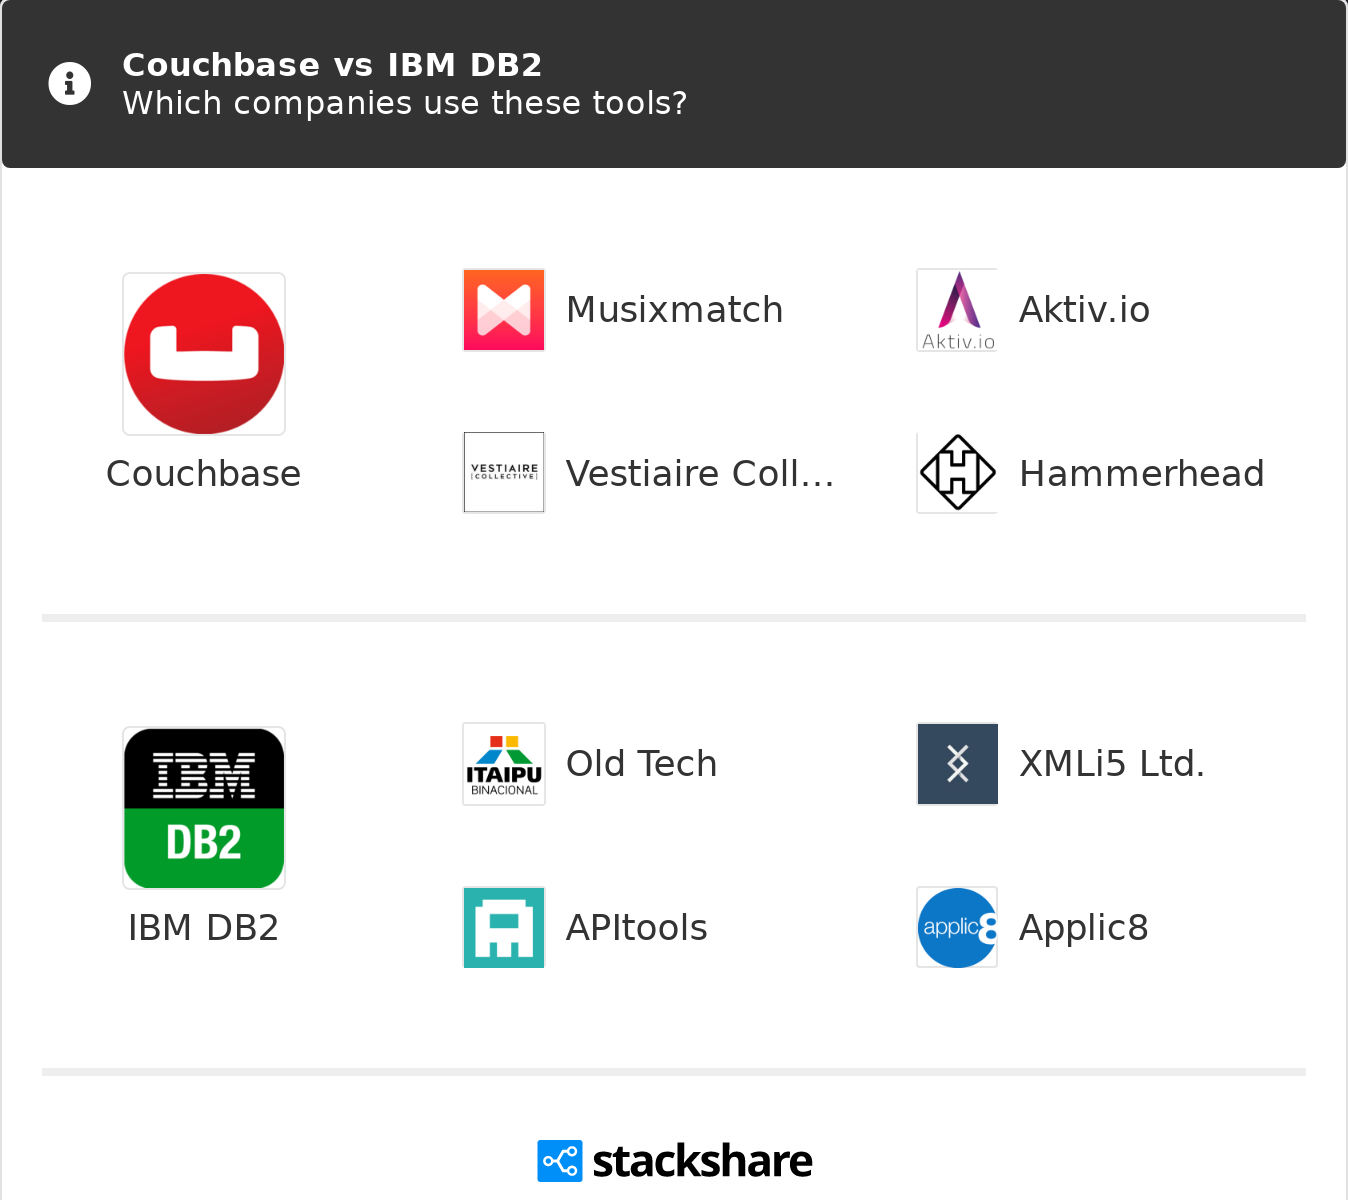 Couchbase vs IBM DB2 | What are the differences?